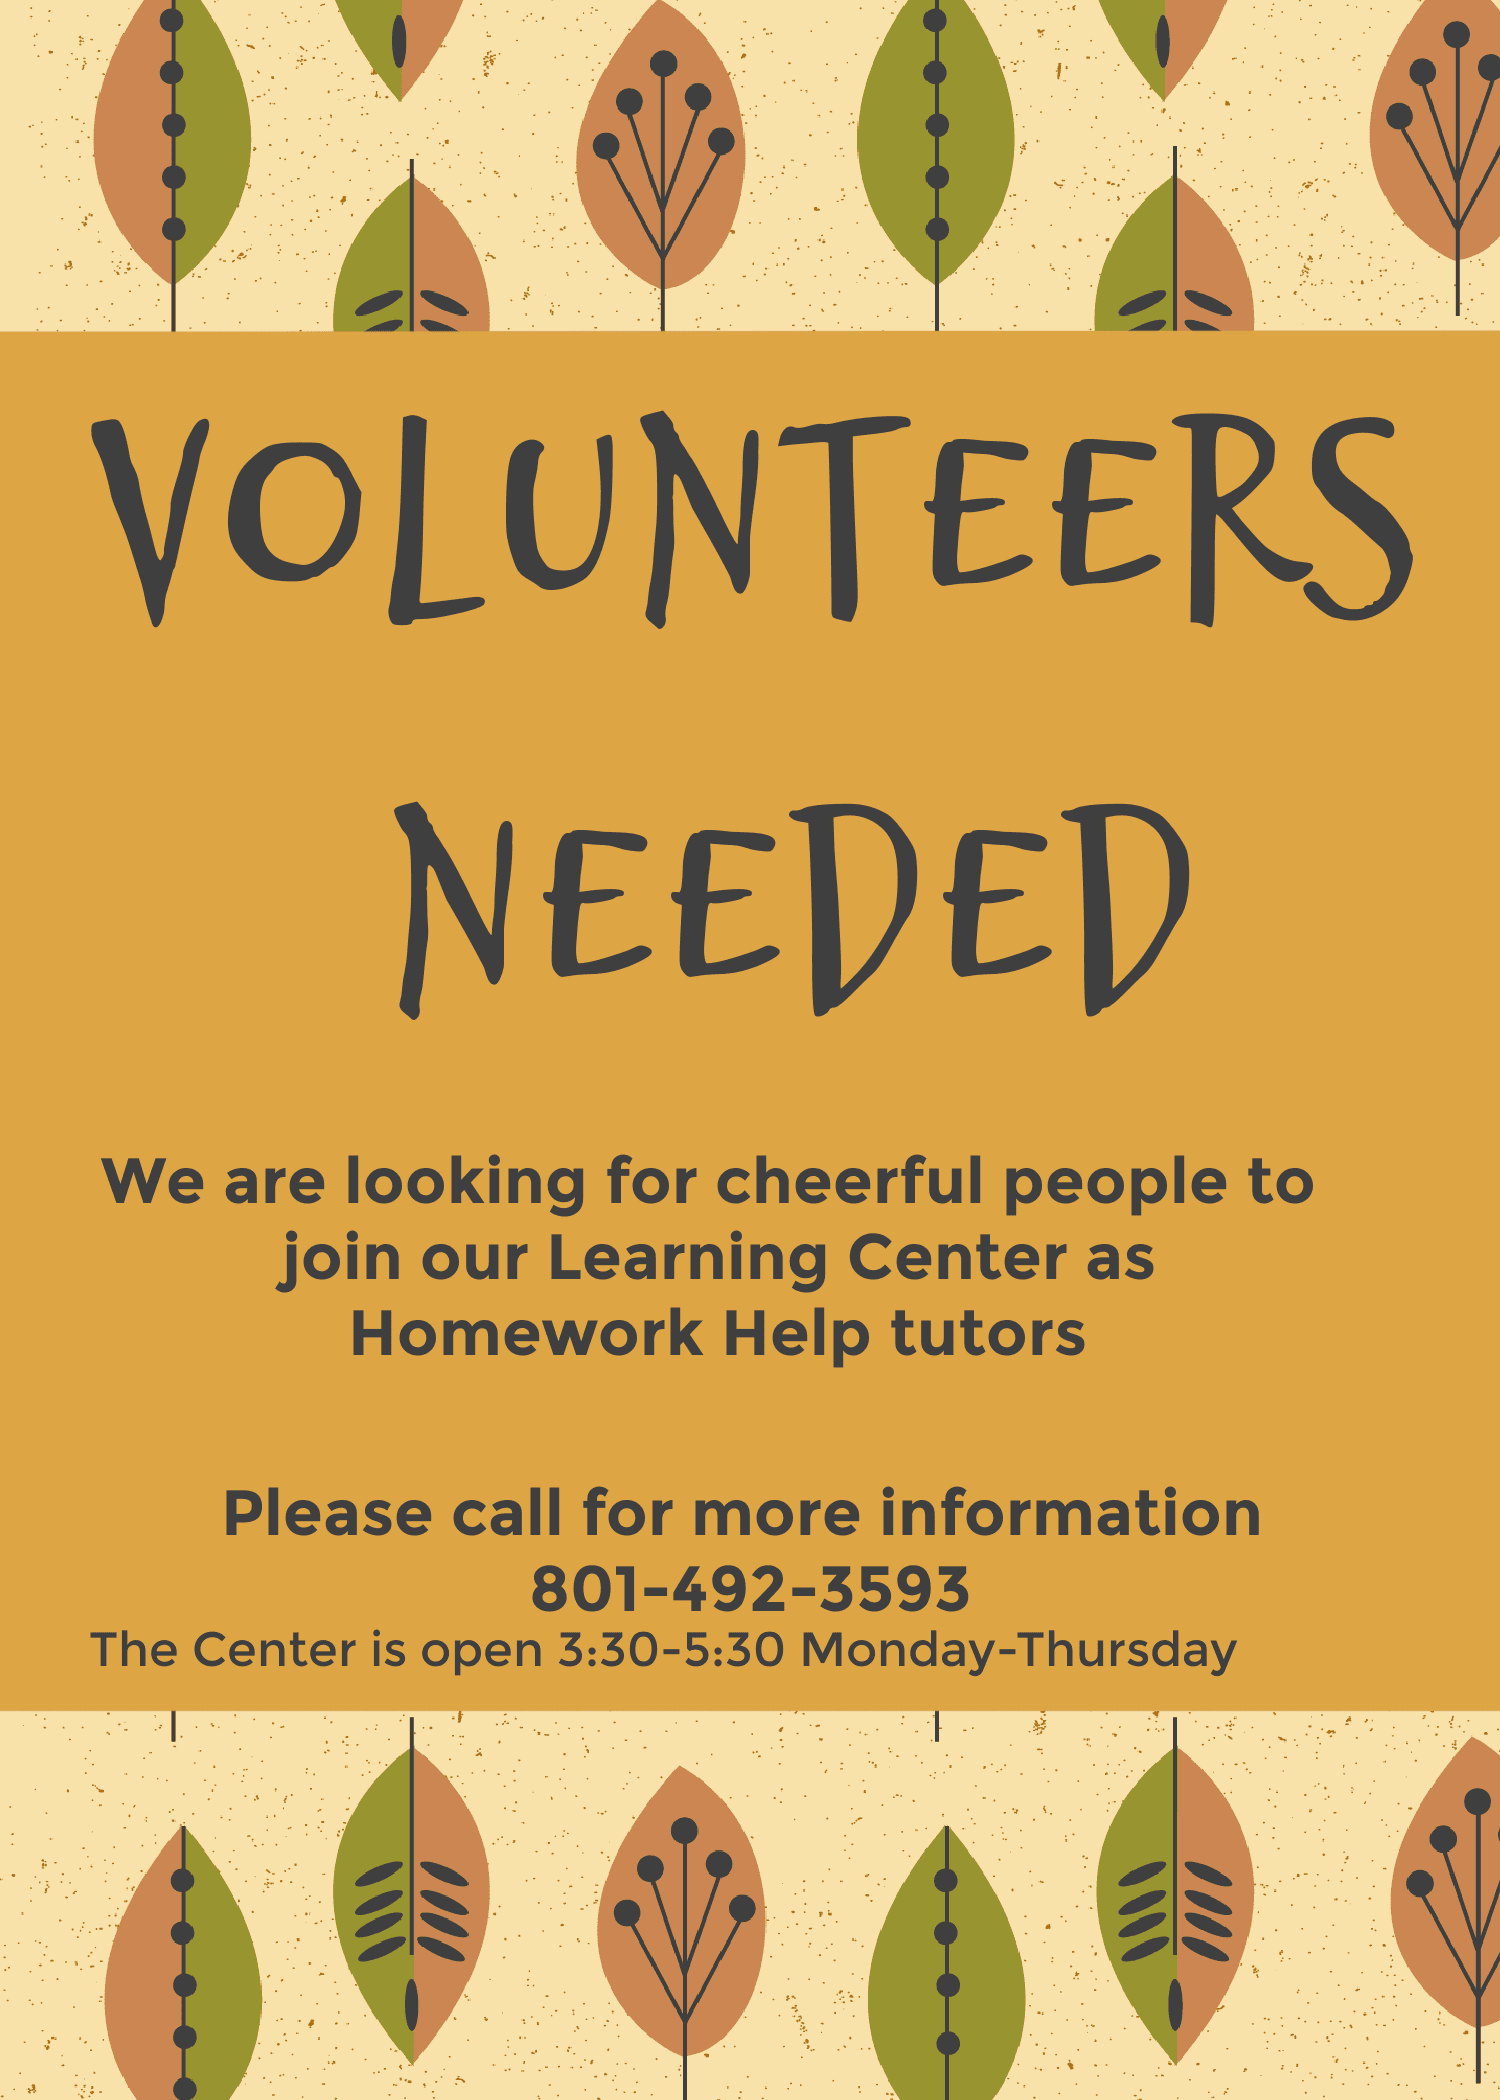 Volunteers needed Oct 2020